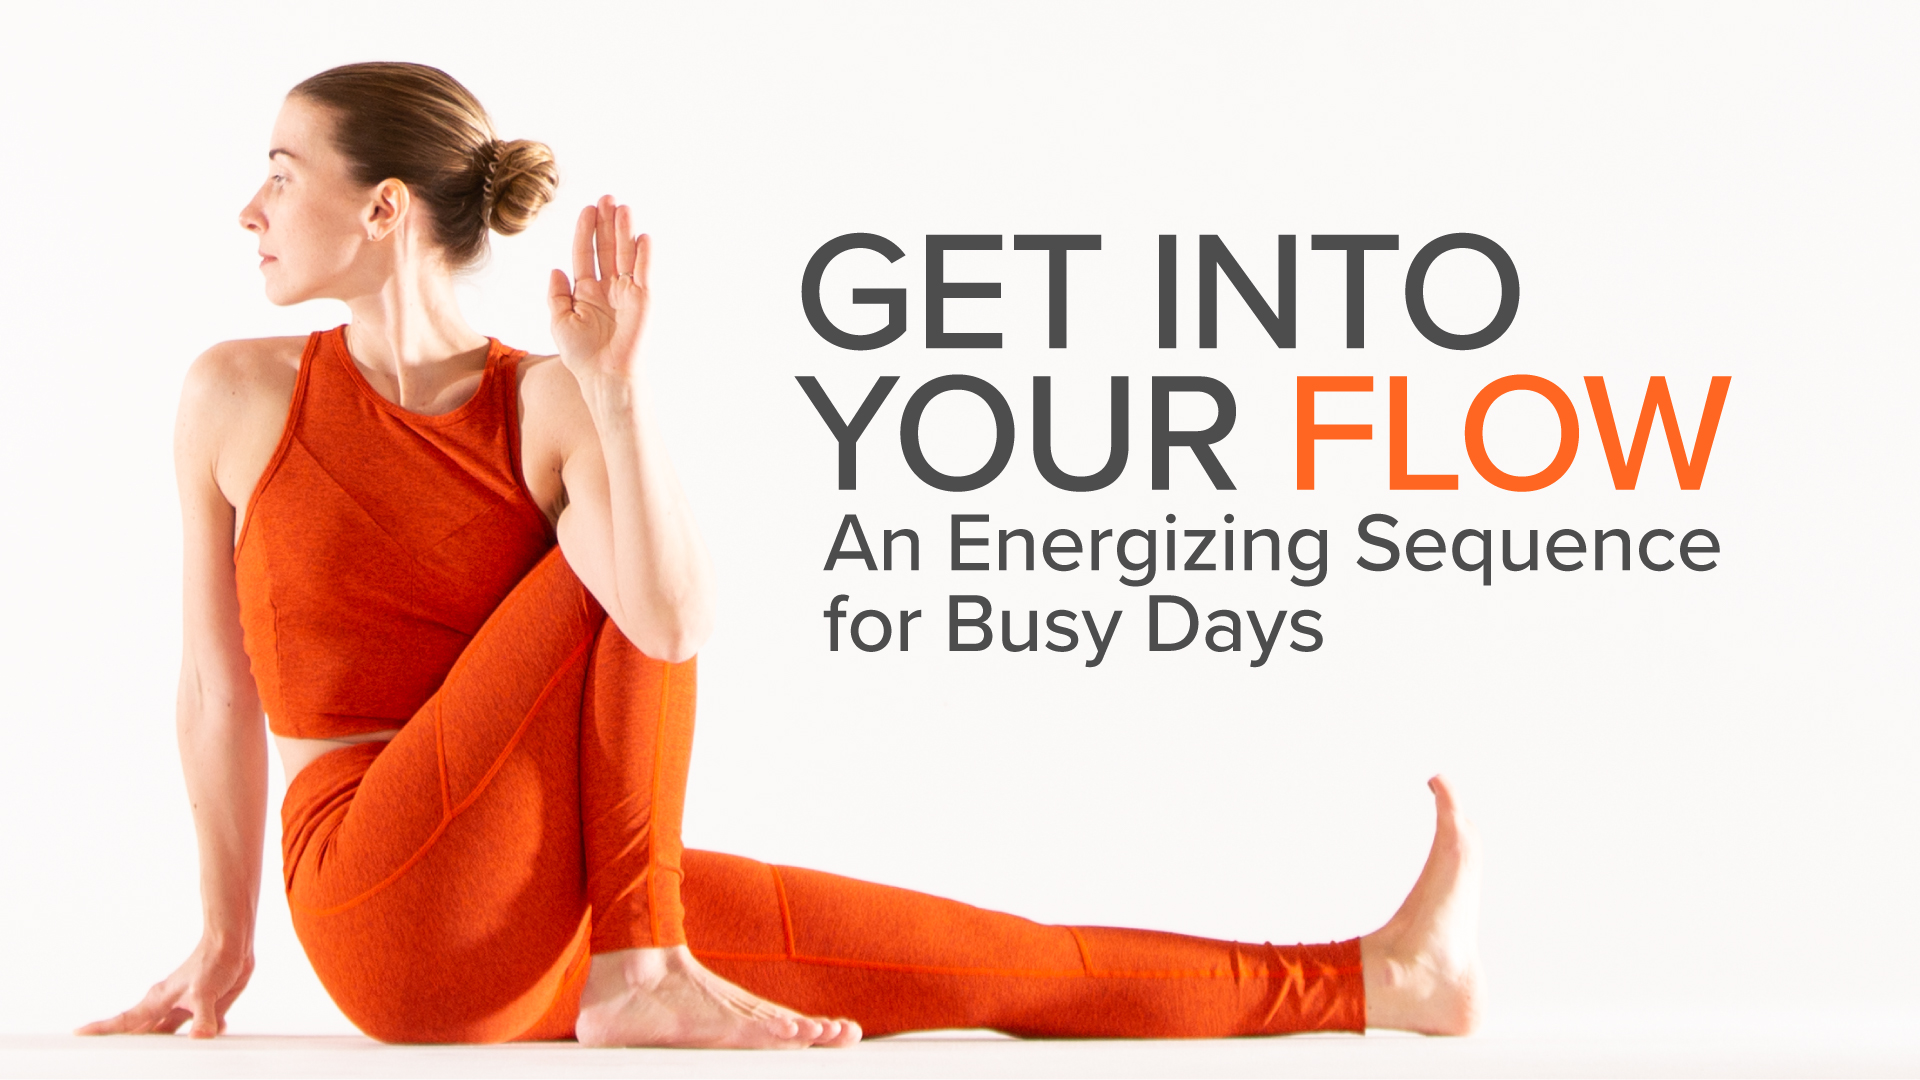 Get Into Your Flow: An Energizing Sequence for Busy Days